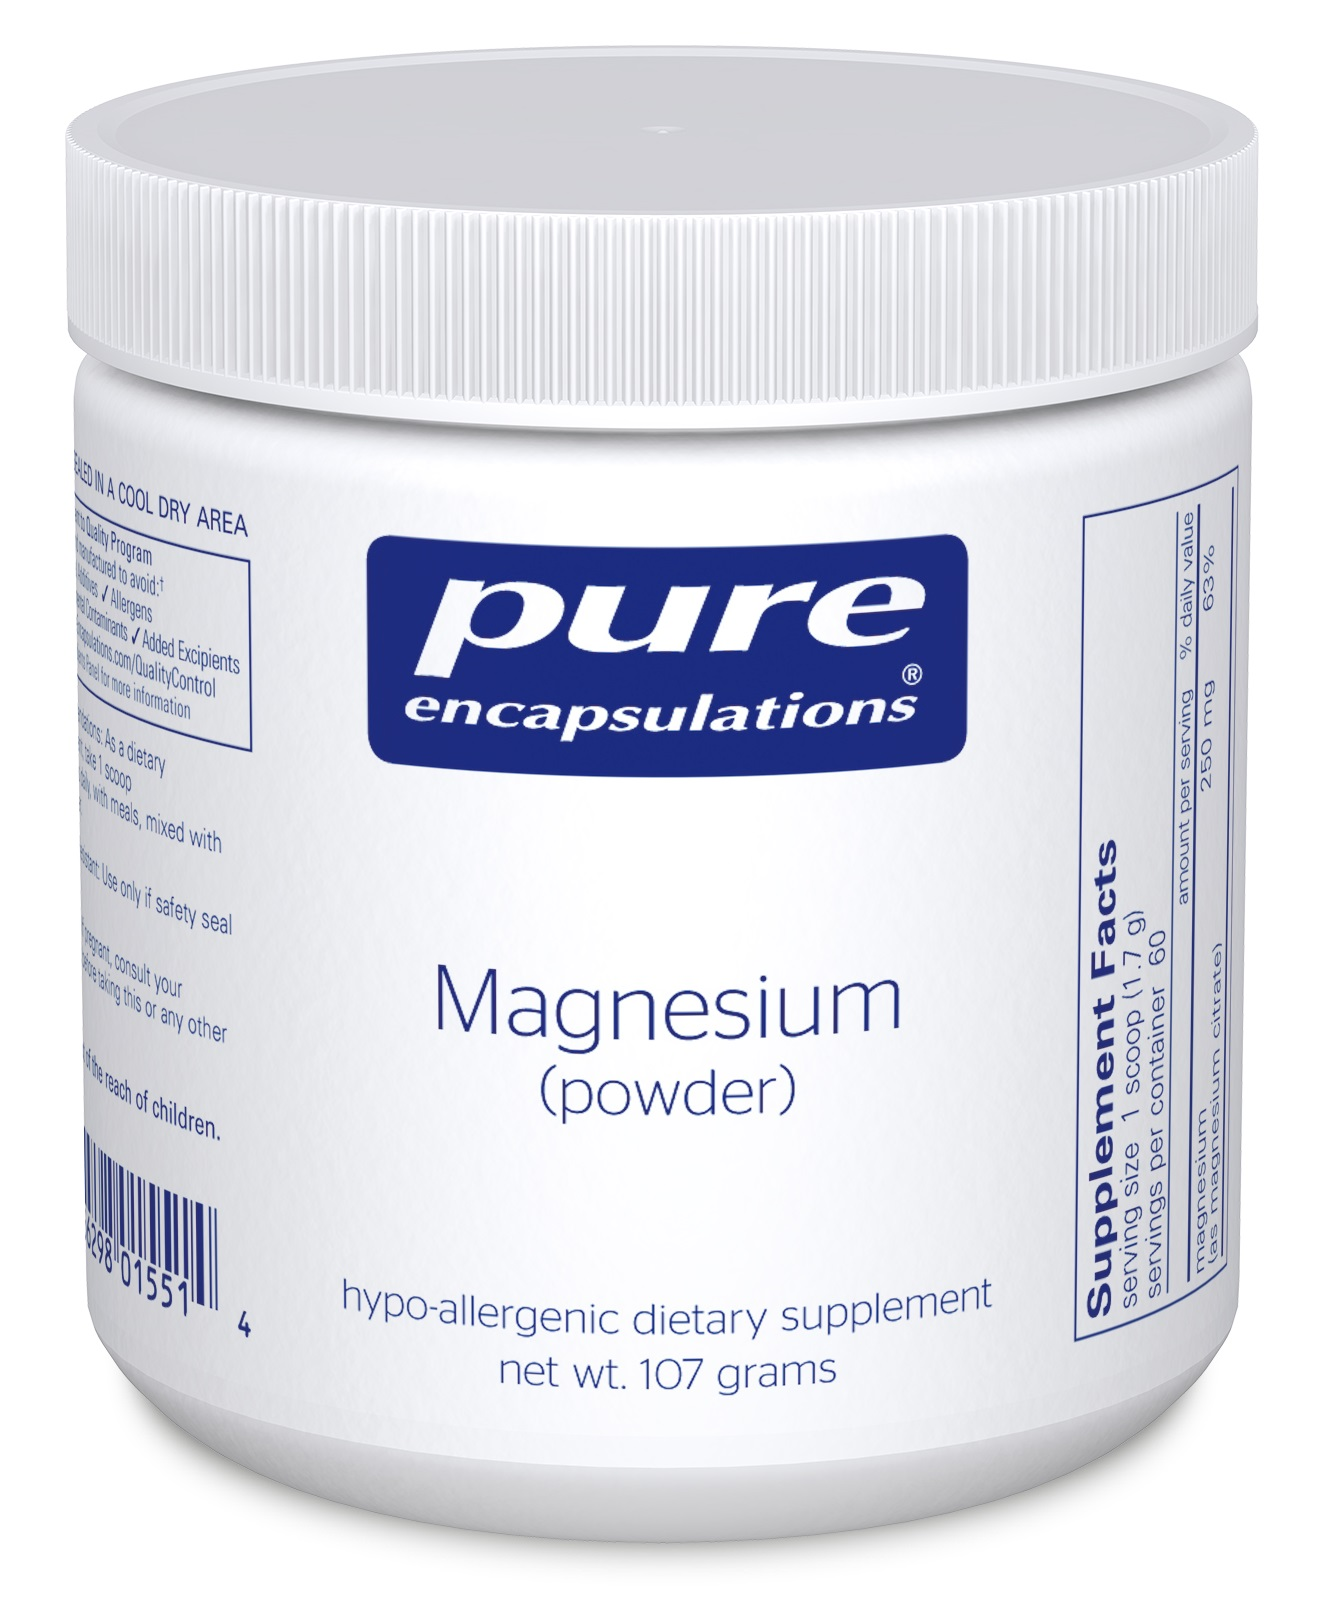 Pure Encapsulations Magnesium (powder)